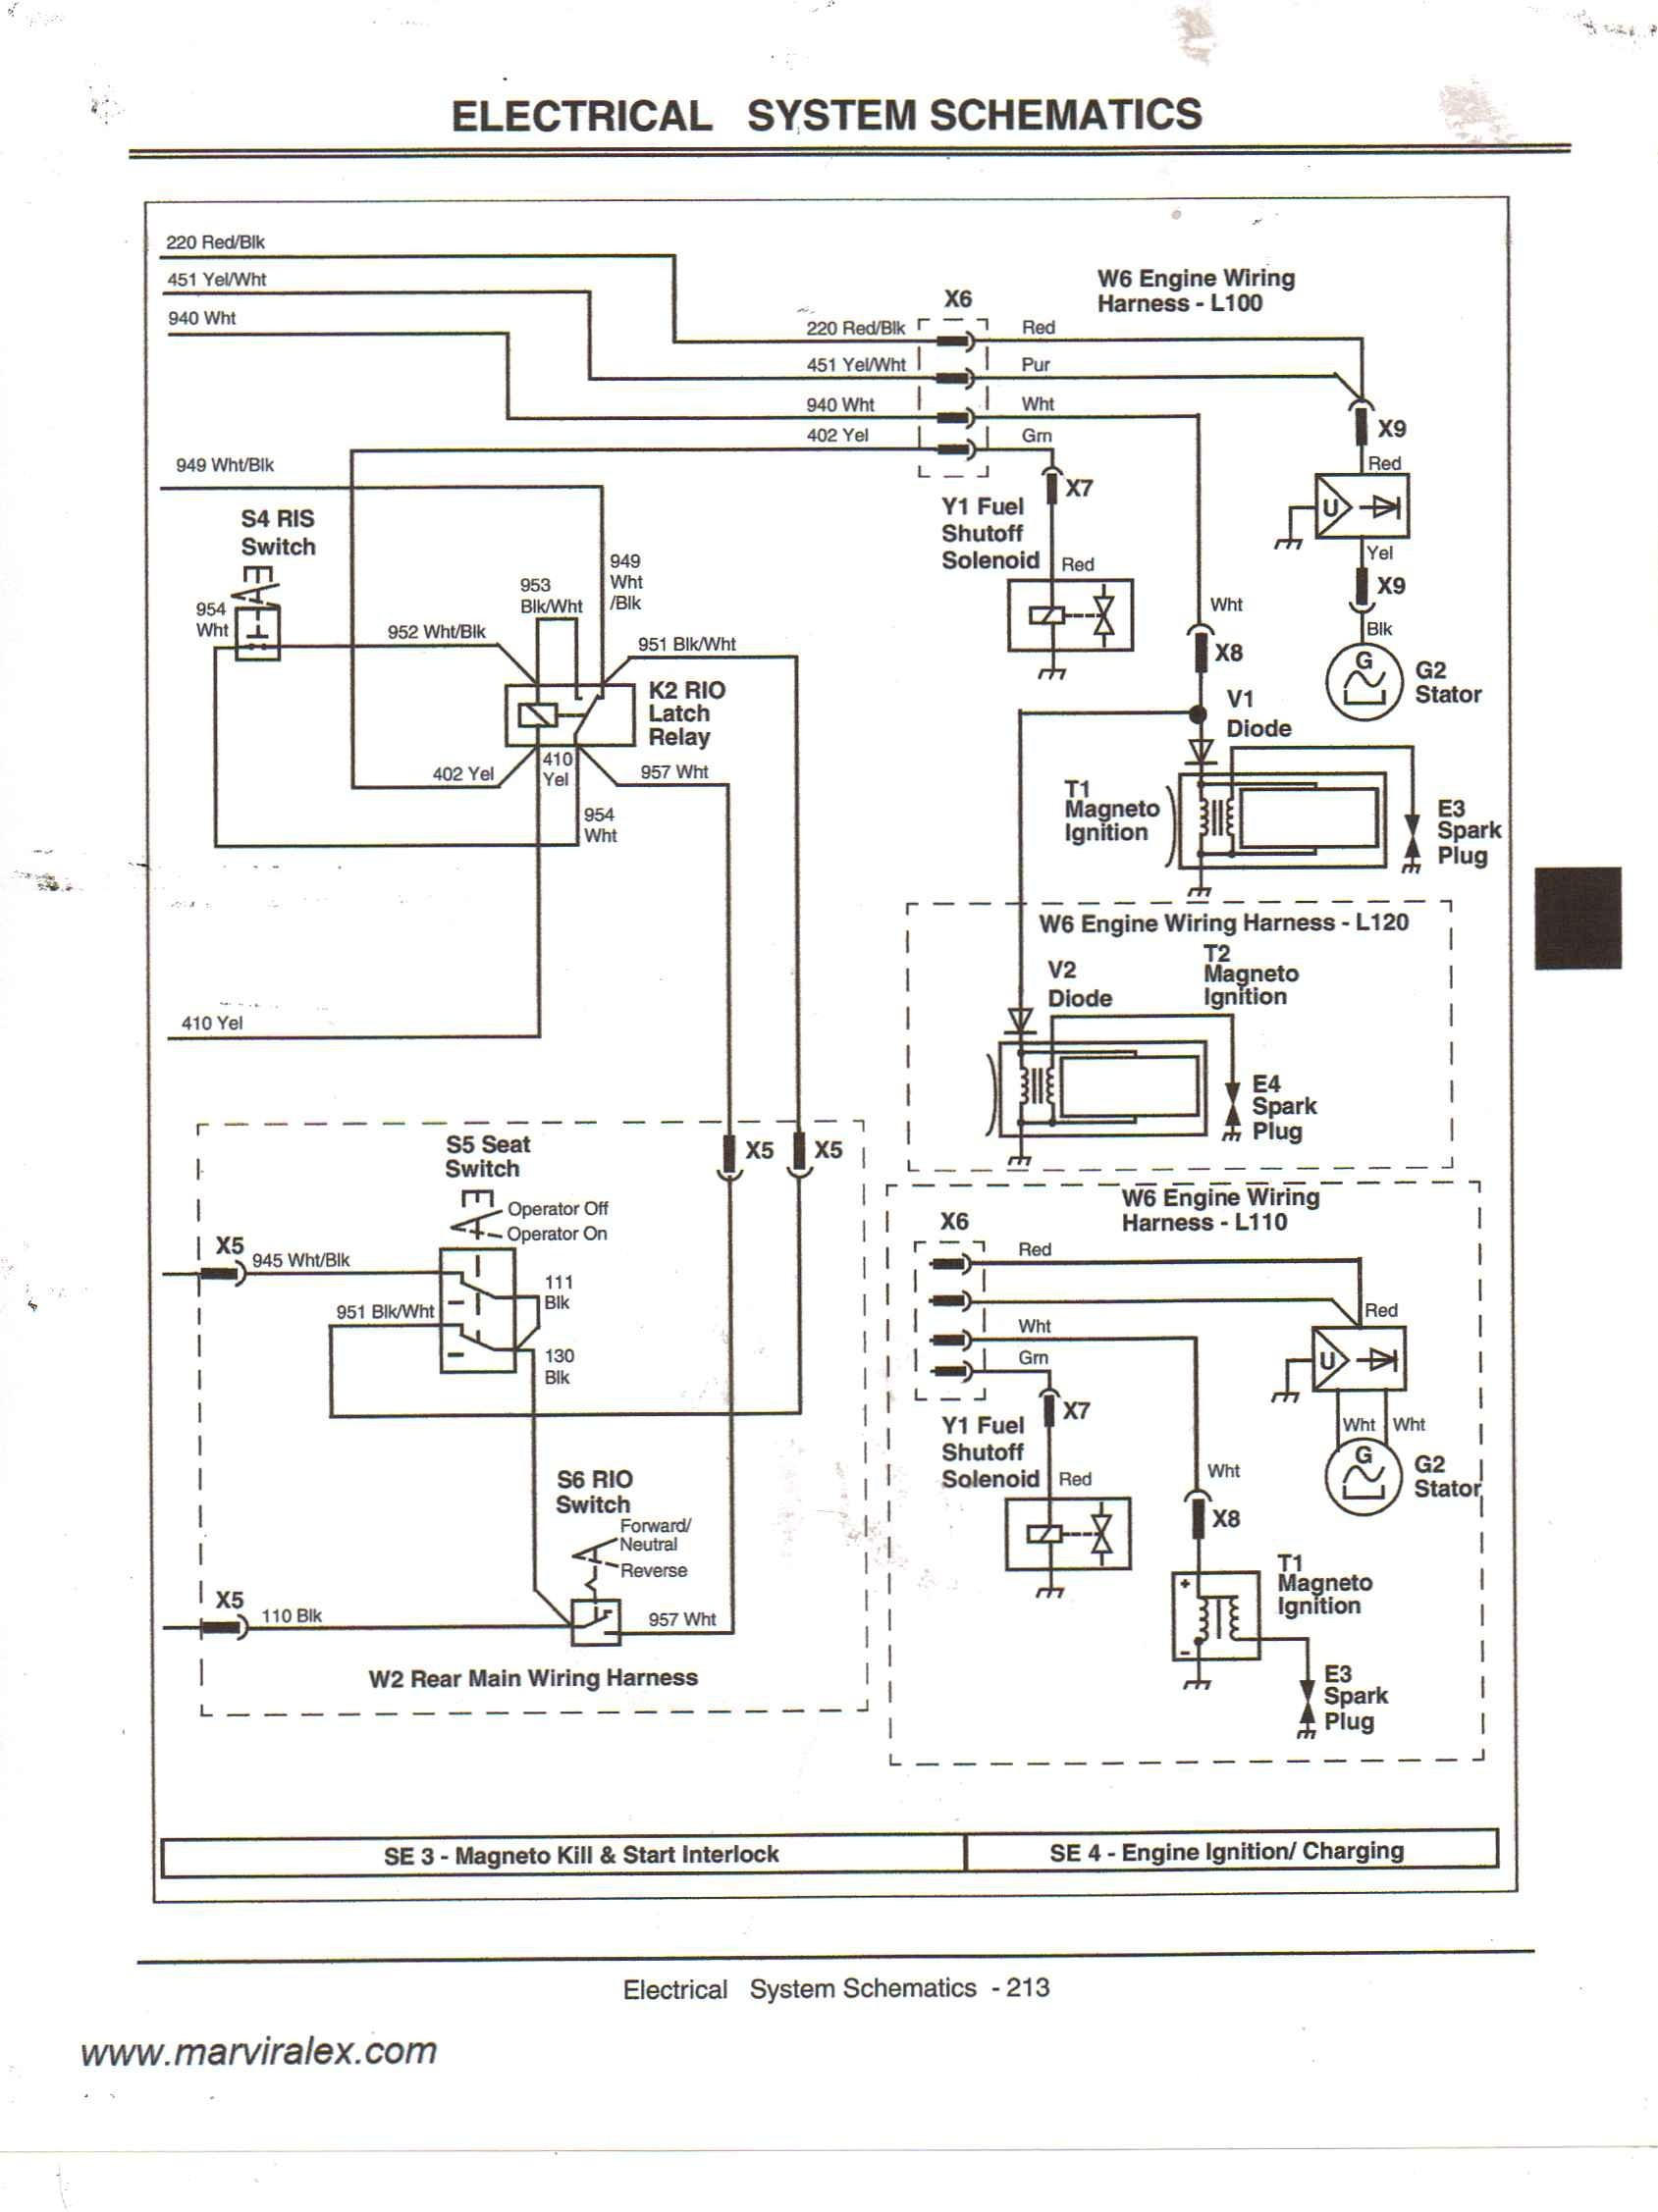 lt160 wiring diagram facts about wiring diagram u2022 rh designsole co John Deere 318 Parts Diagram John Deere Electrical Diagrams